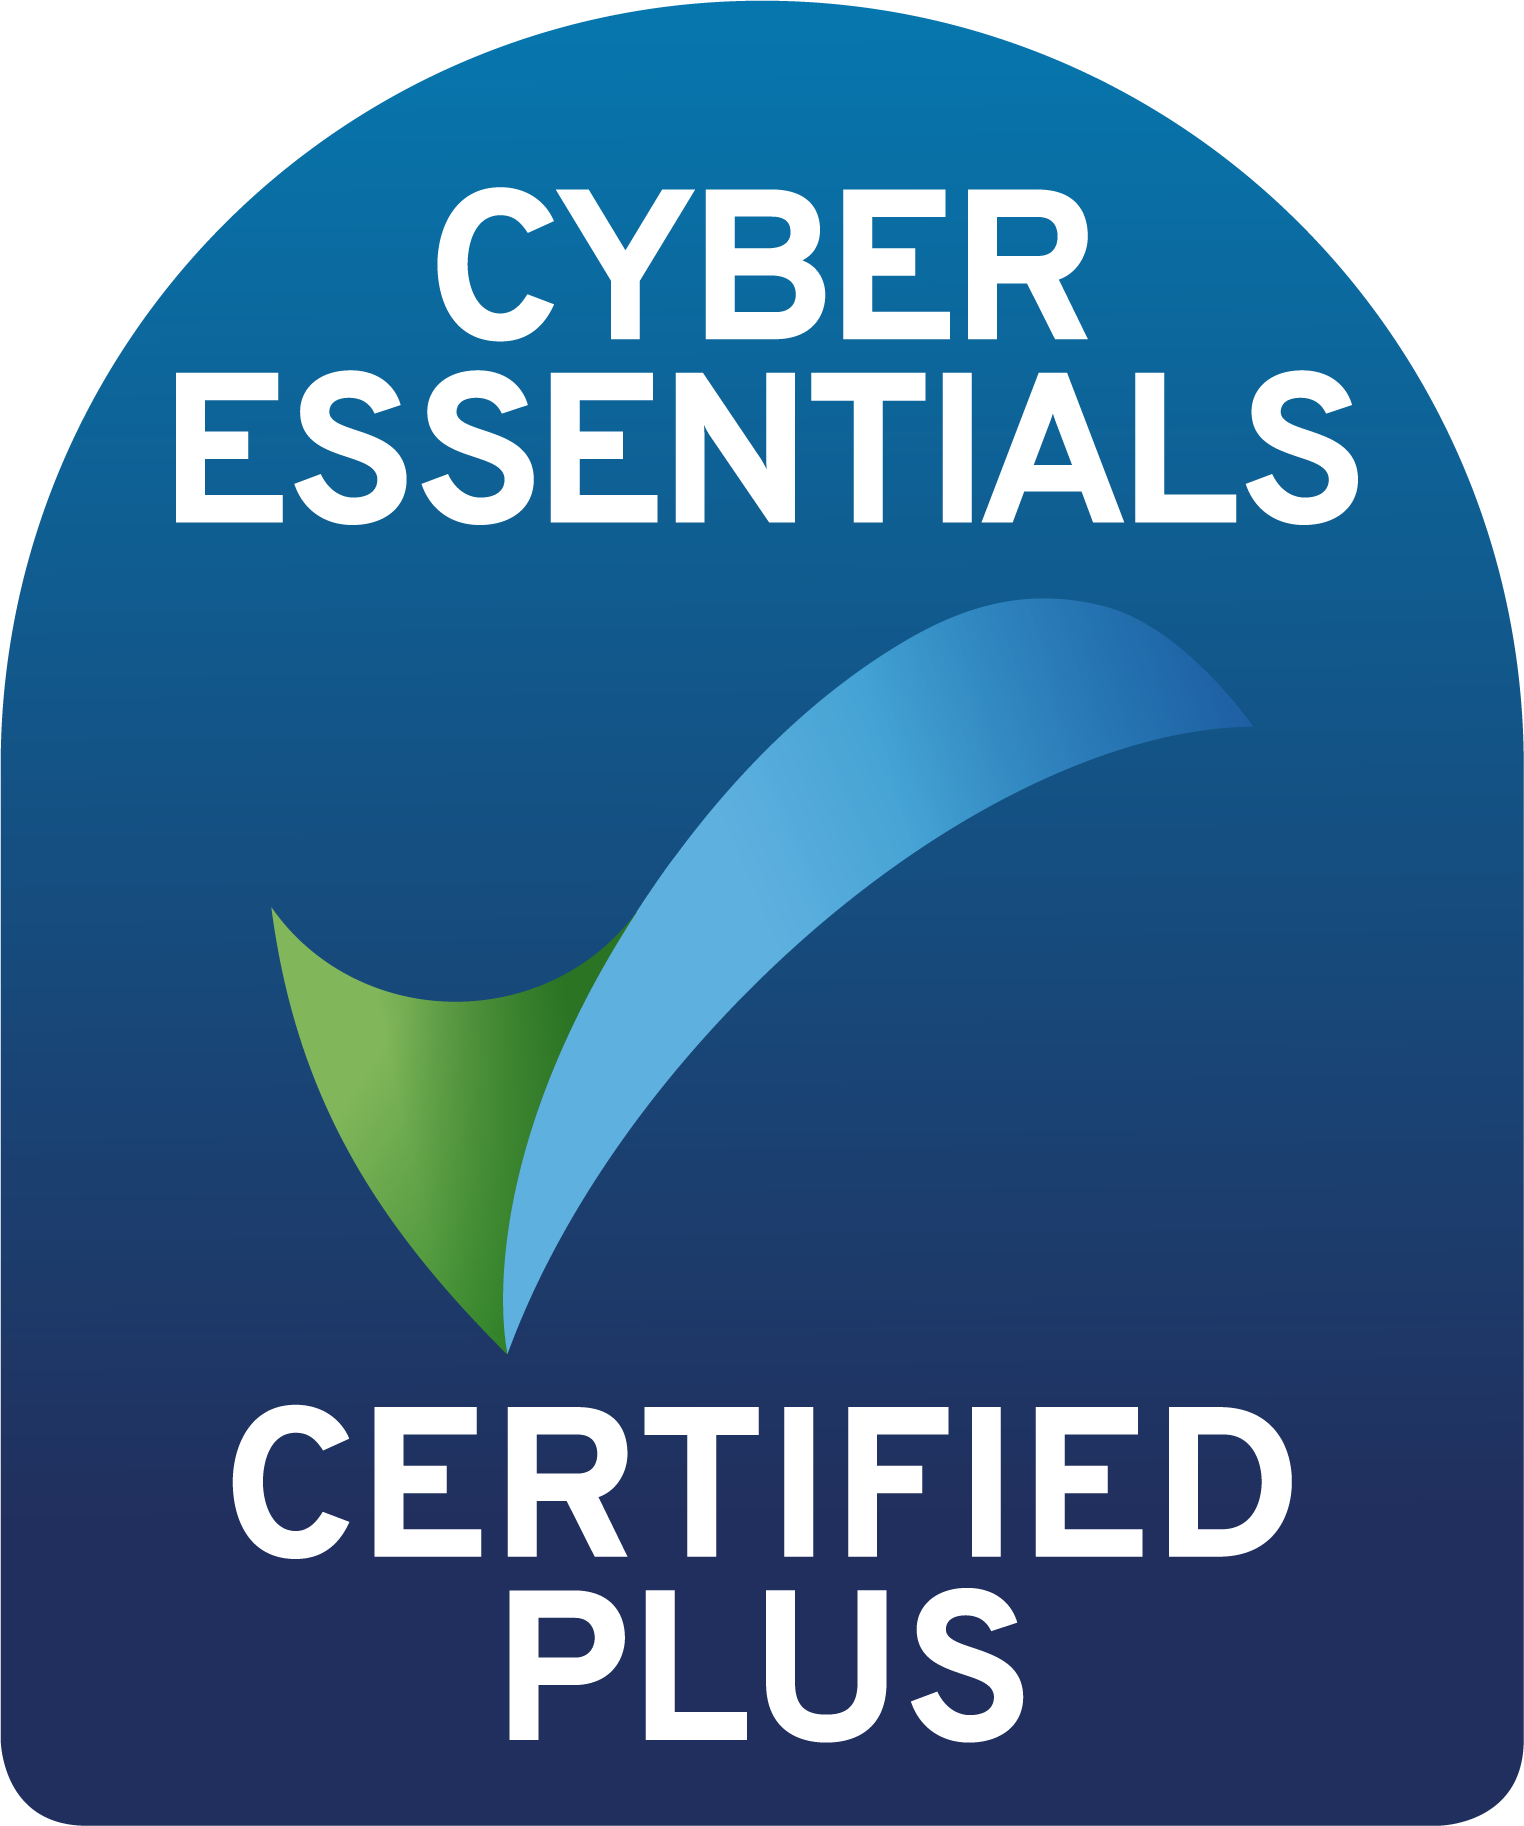 cyber-essentials-plus-badge